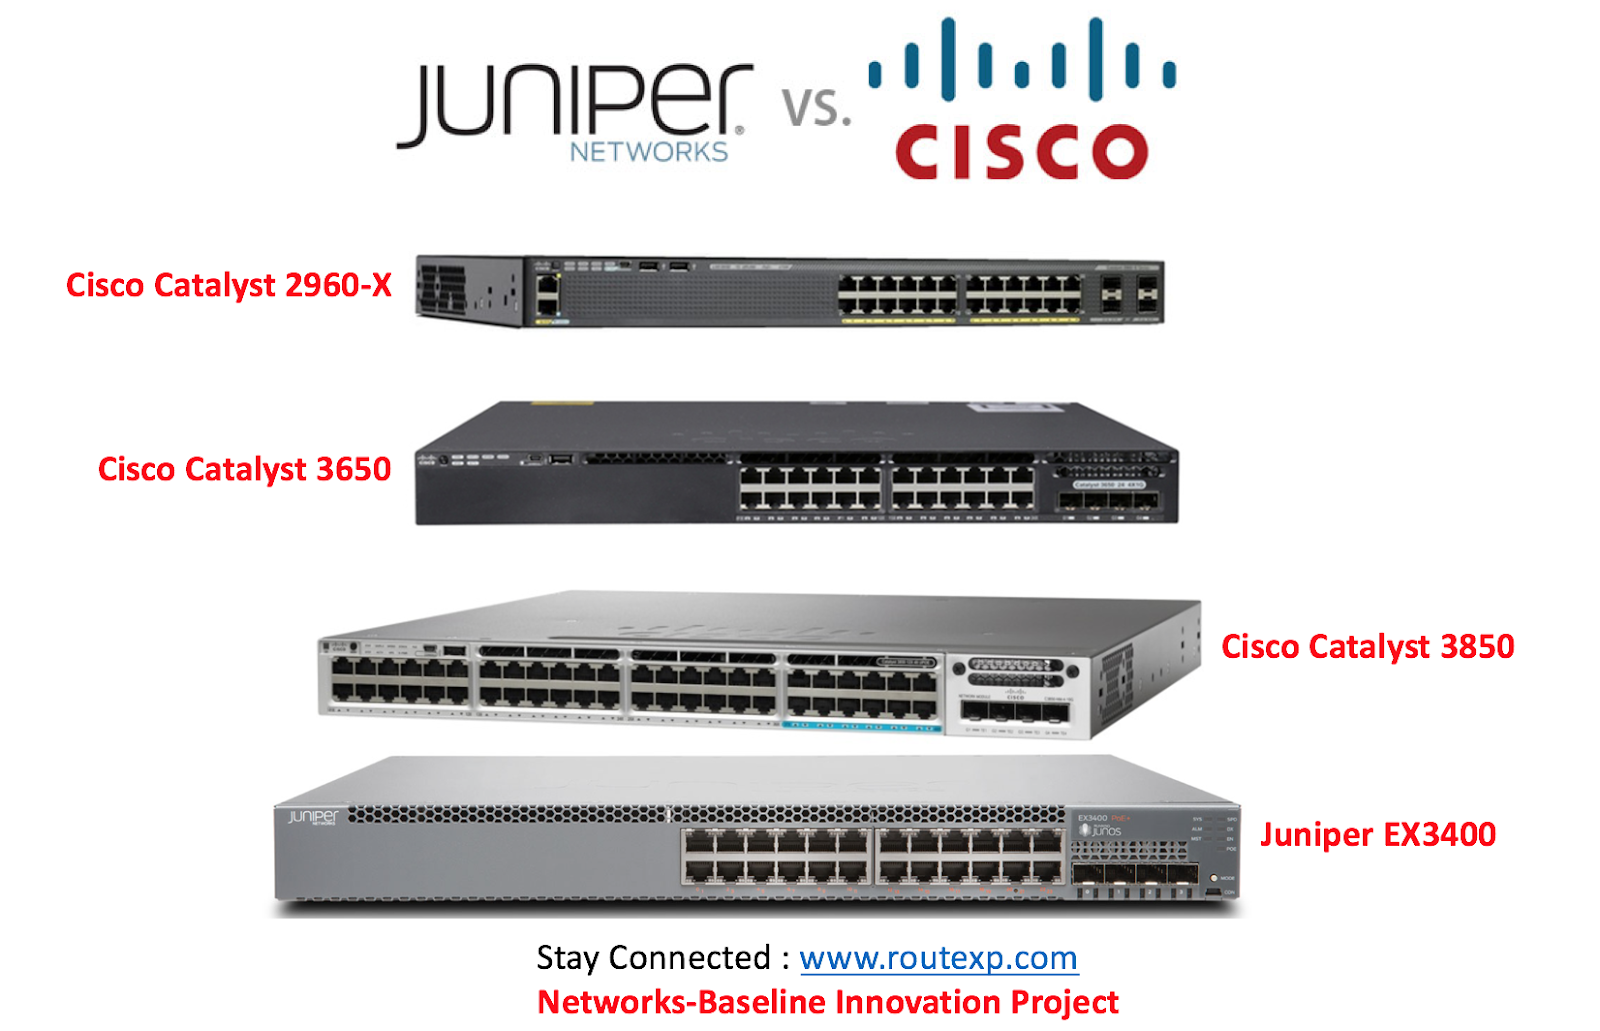 Comparison : Cisco 2960-X Vs Cisco 3650 Vs Cisco 3850 Vs Juniper